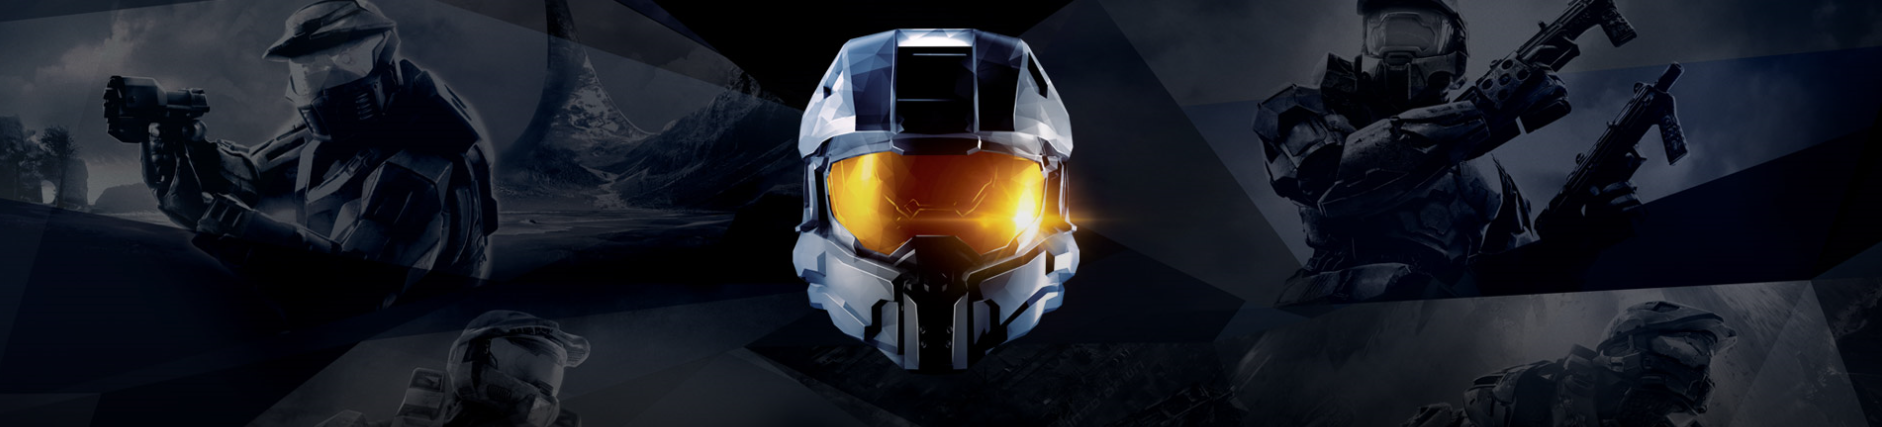 mcc matchmaking status Xbox live status and problems cod matchmaking is garbage tonight, as well or mcc because they require updates to play.